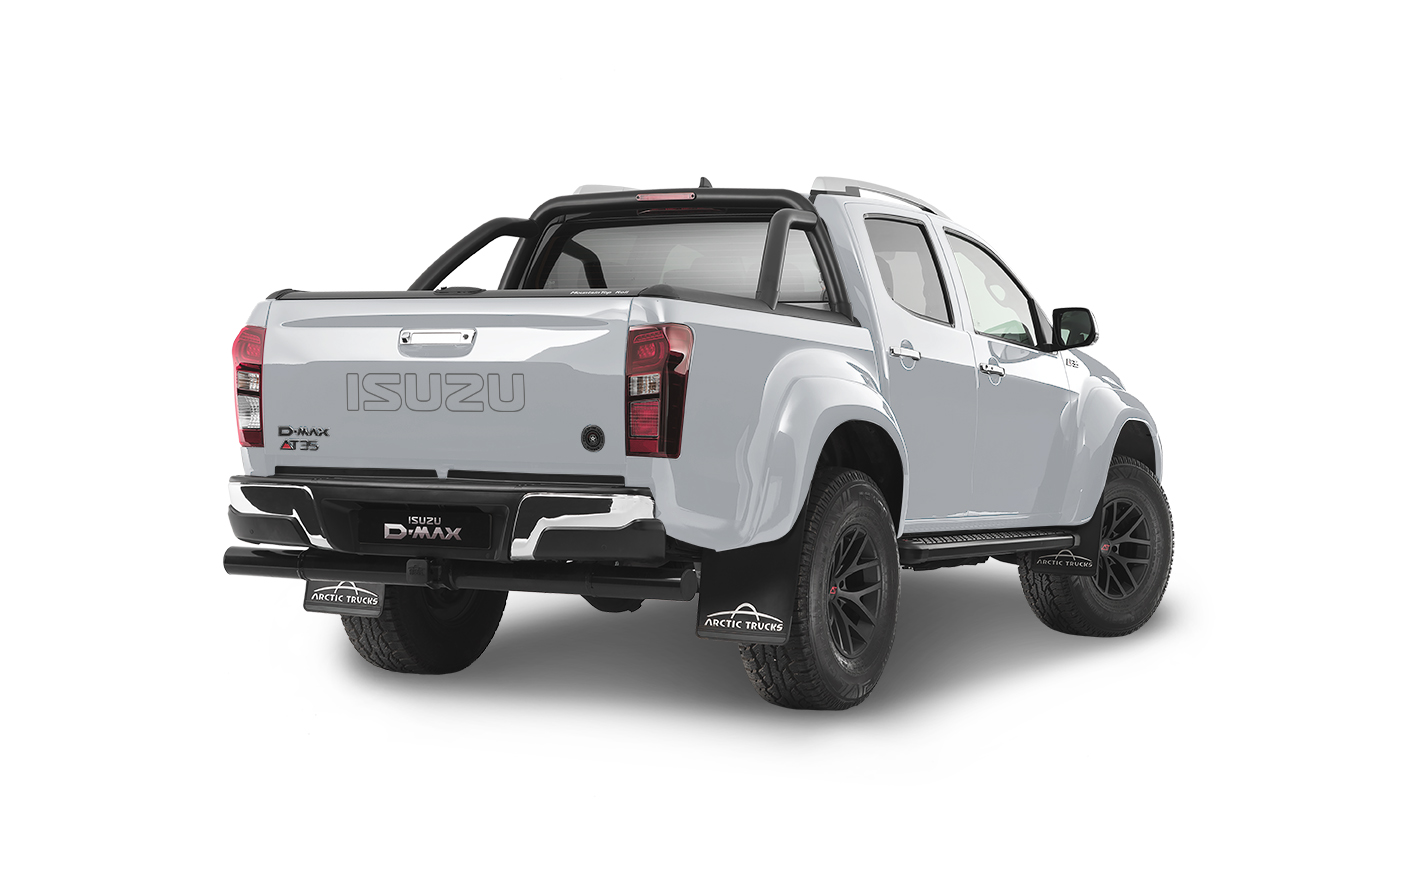 Rear view of the Isuzu D-Max Arctic AT35 in white